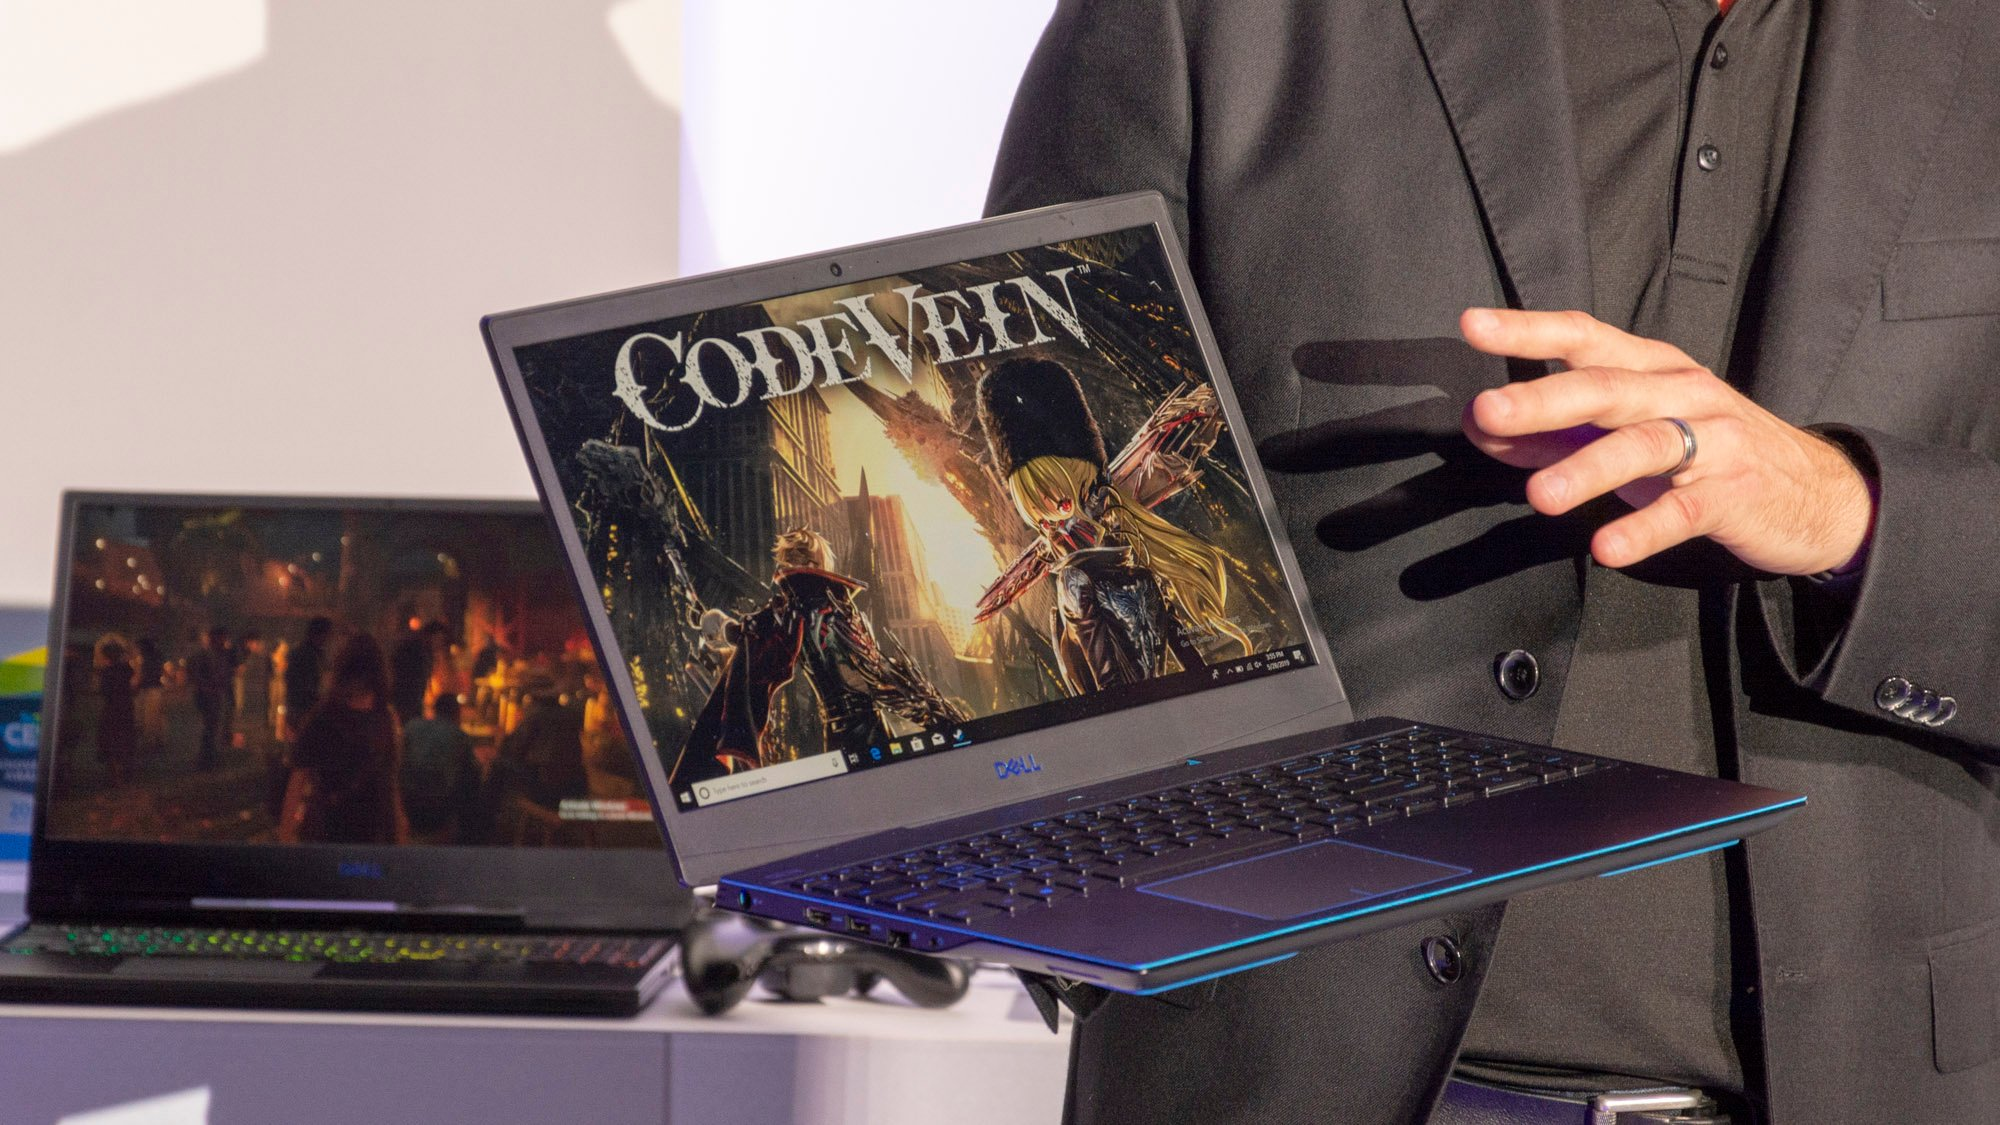 Dell G3 15 (2019) hands-on review: Dell's budget gaming